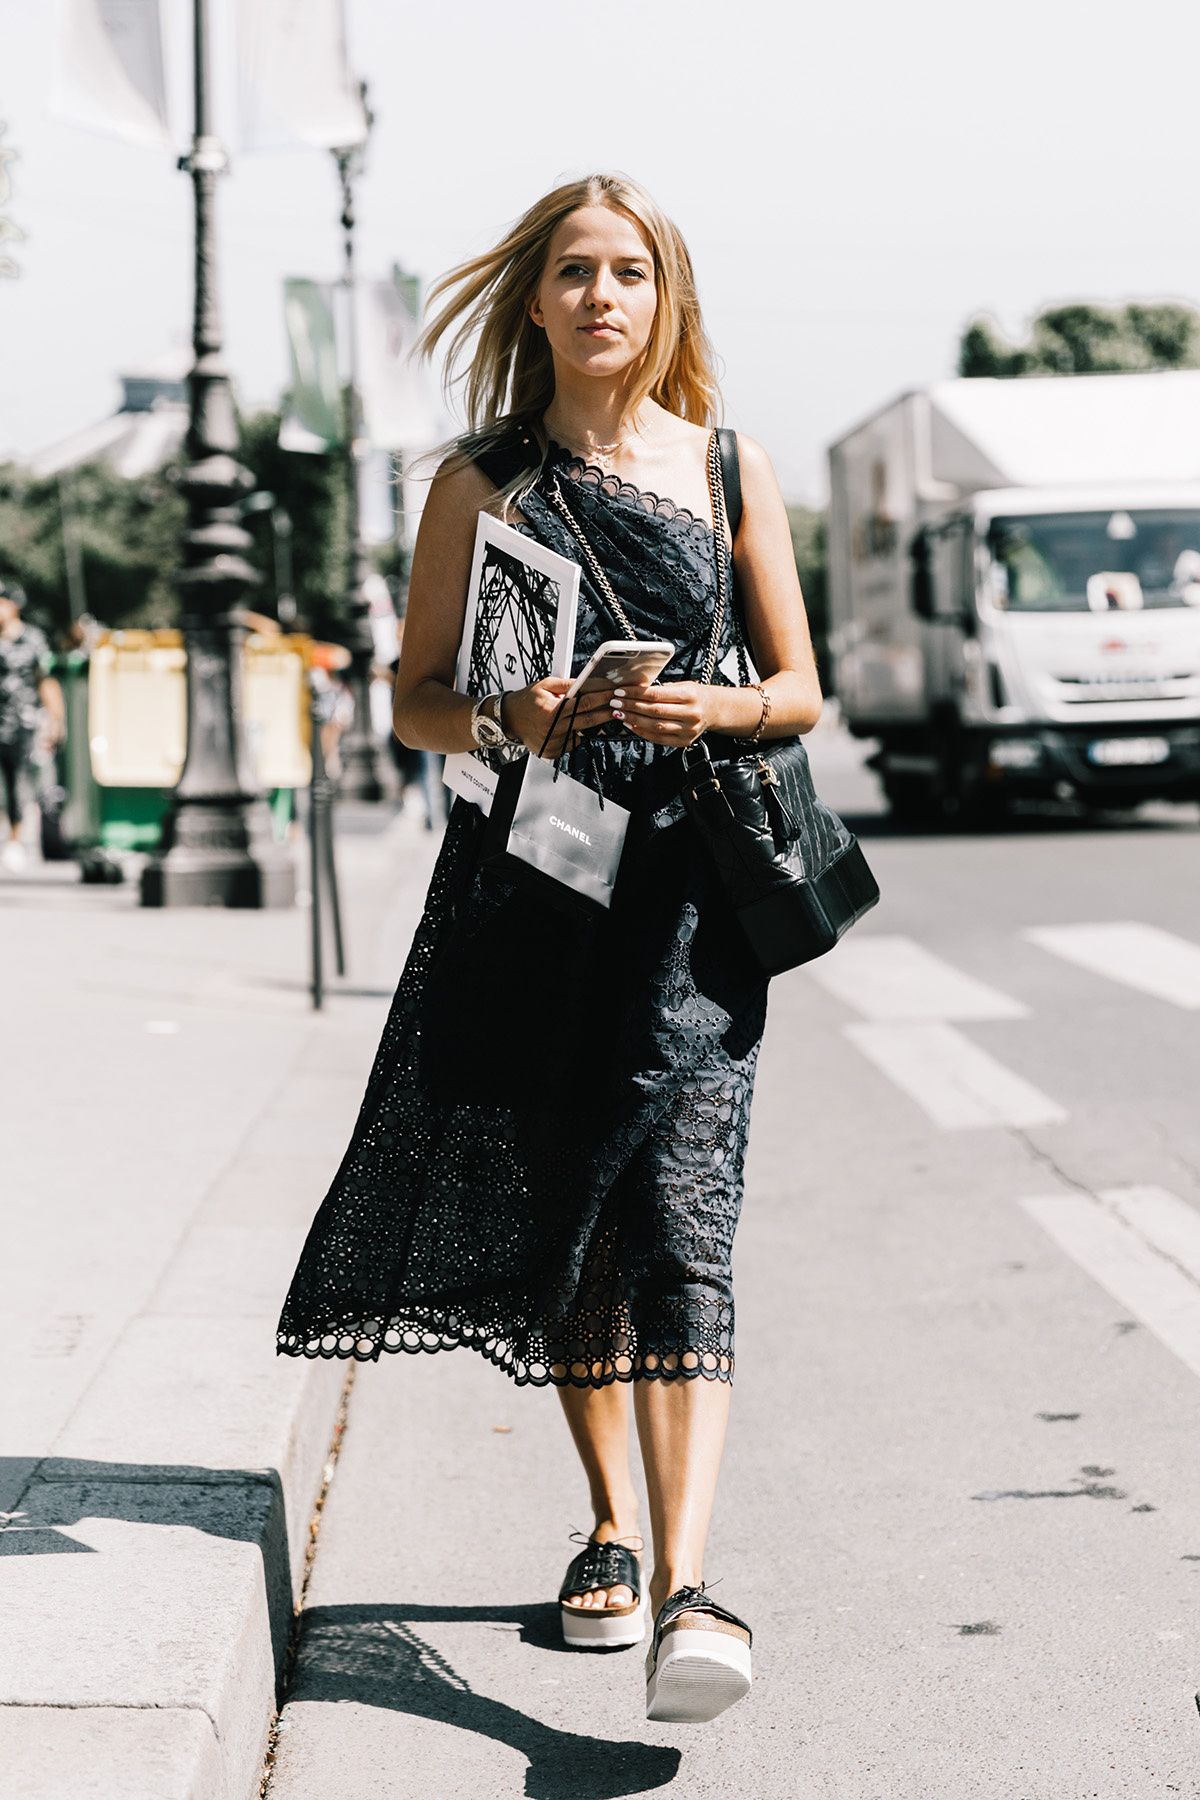 Black dress in summer - A Black Dress In Summer Is A Bold Look But It Looks Incredible Non The